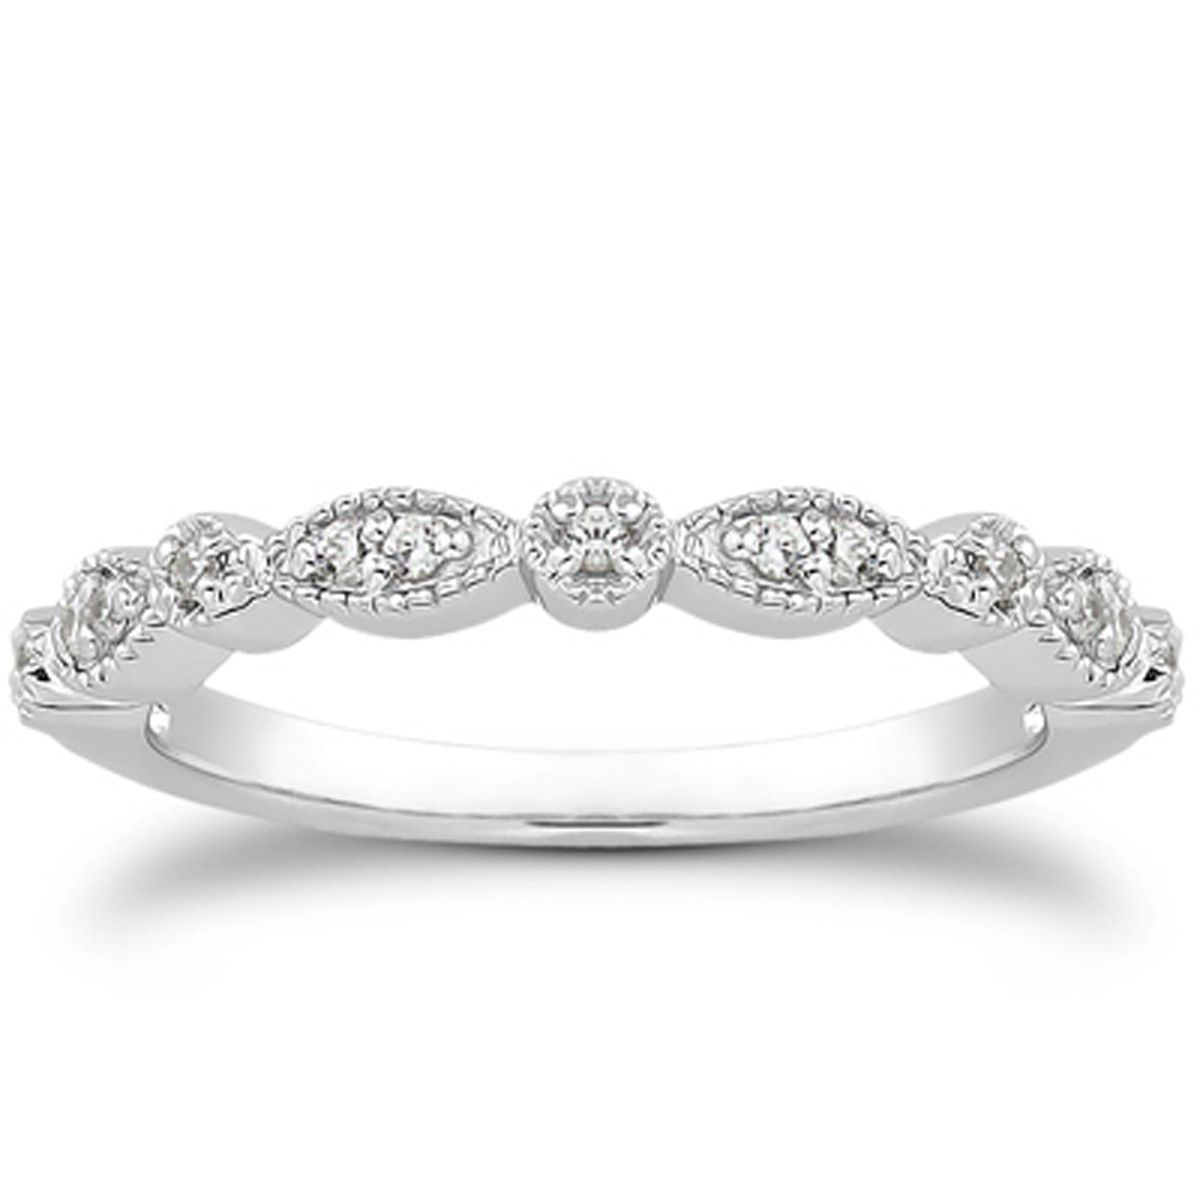 14k white gold vintage look fancy pave diamond milgrain wedding